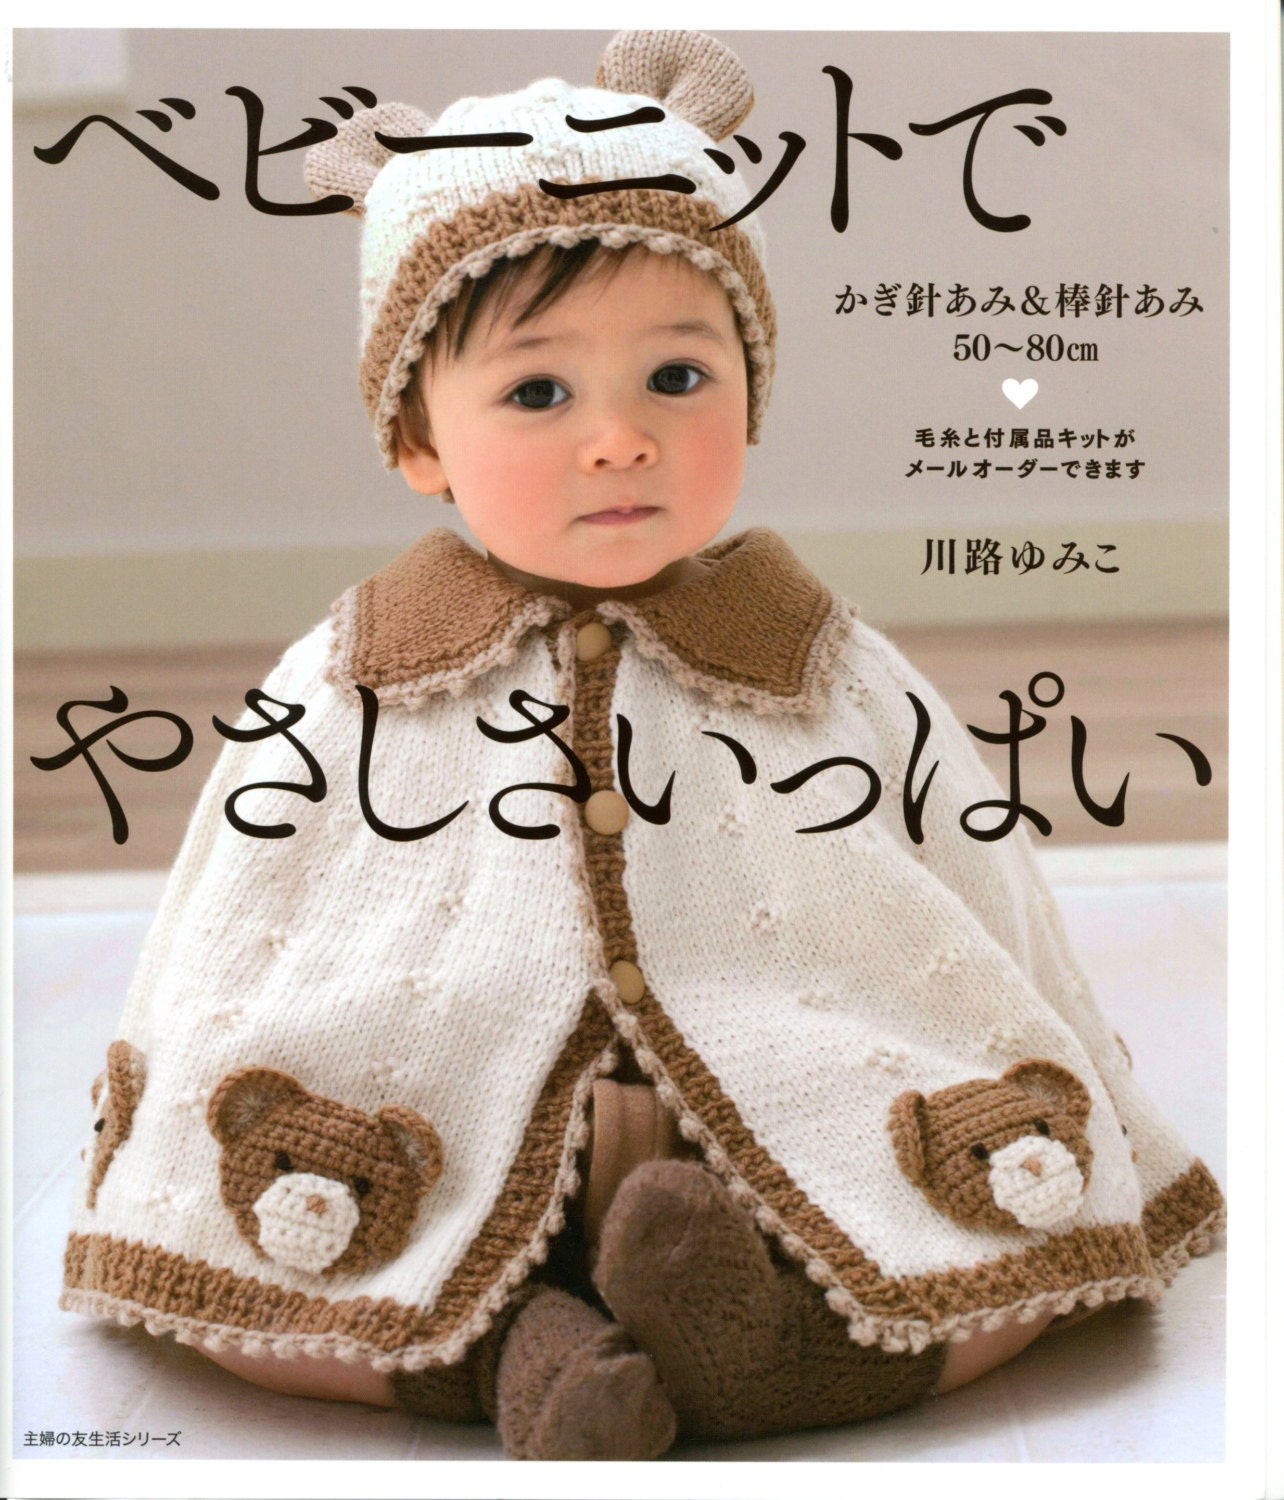 37 Baby Knit And Crochet Clothes Pattern Japanese Ebook Etsy